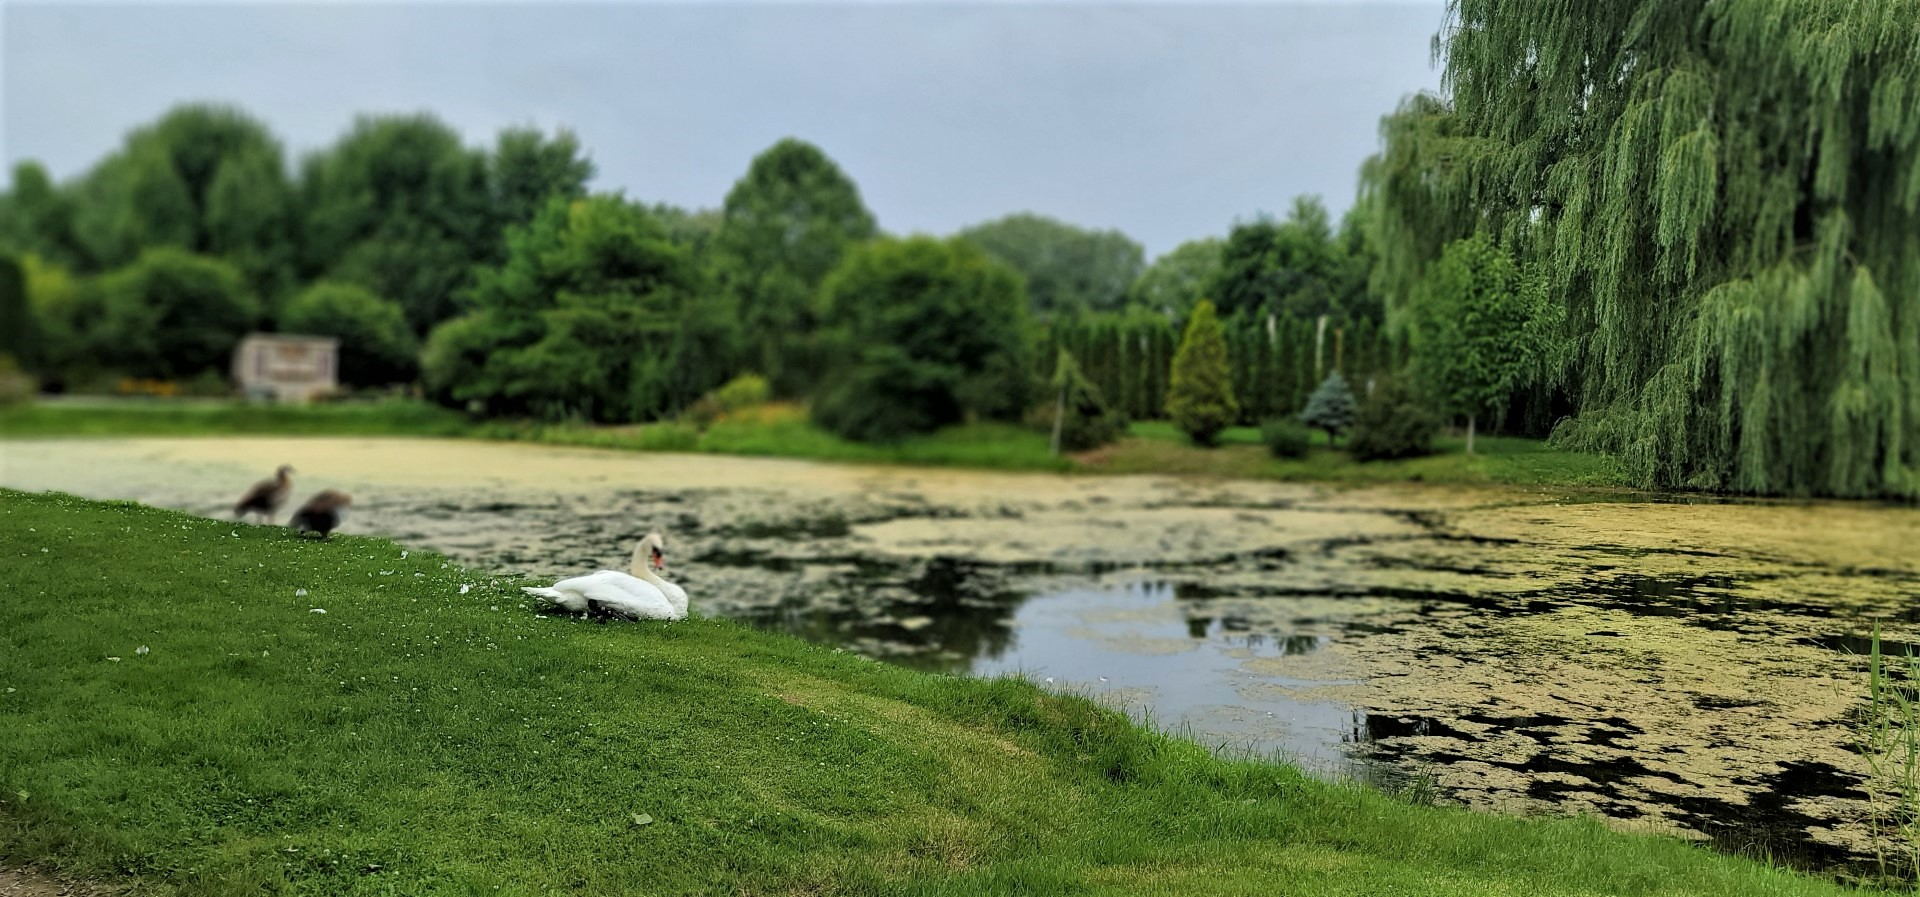 English swan in Ontario's whistling gardens